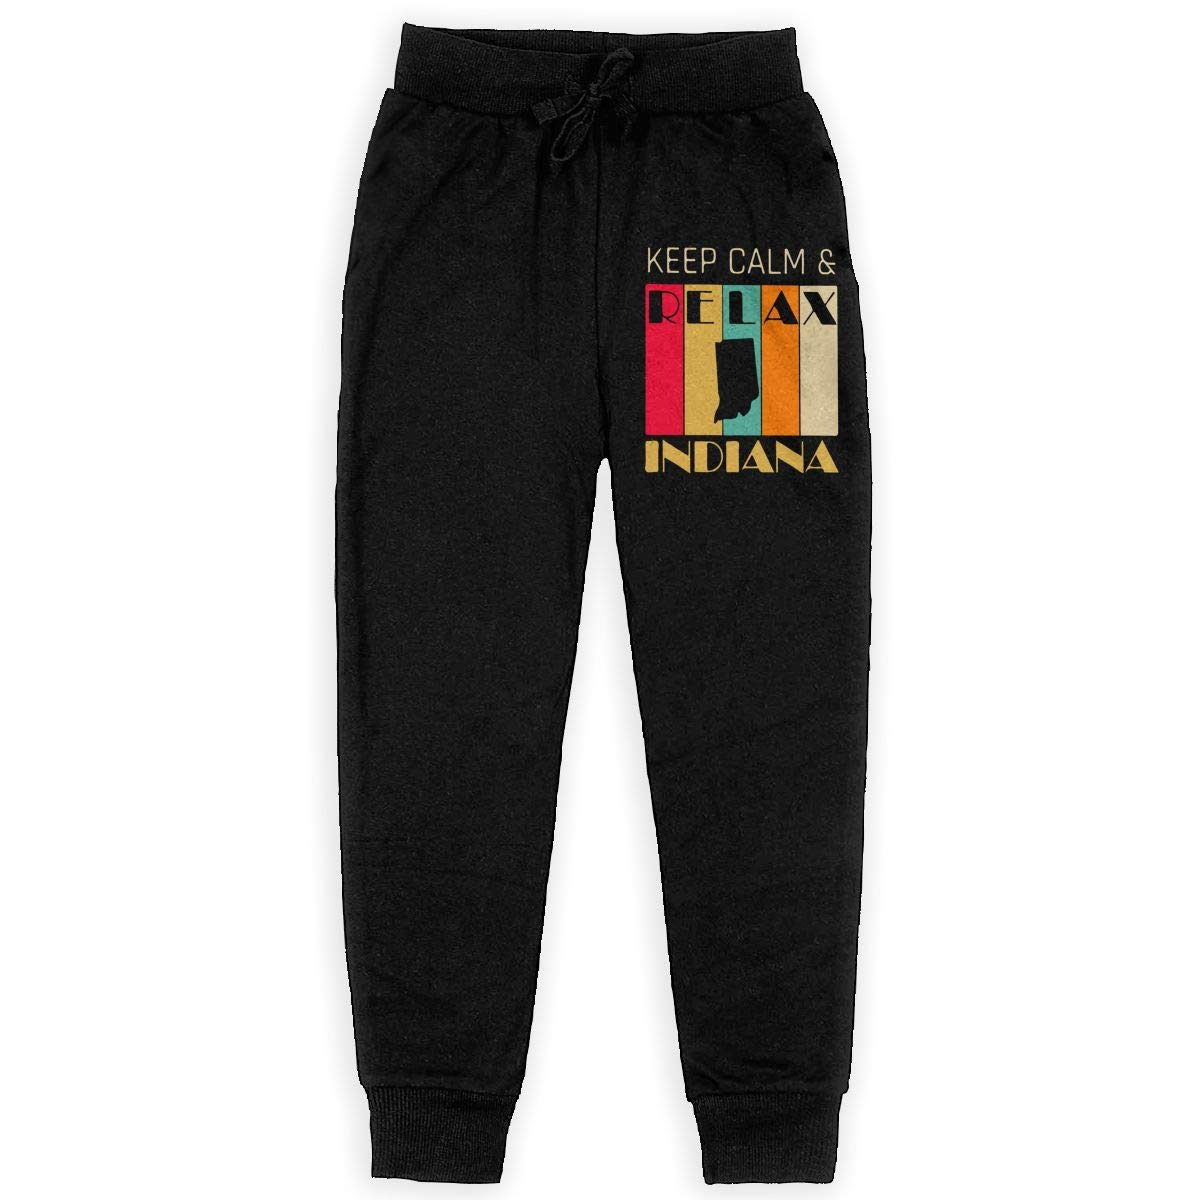 Youth Athletic Pants for Teen Girls WYZVK22 Keep Calm /& Relax Indiana Soft//Cozy Sweatpants